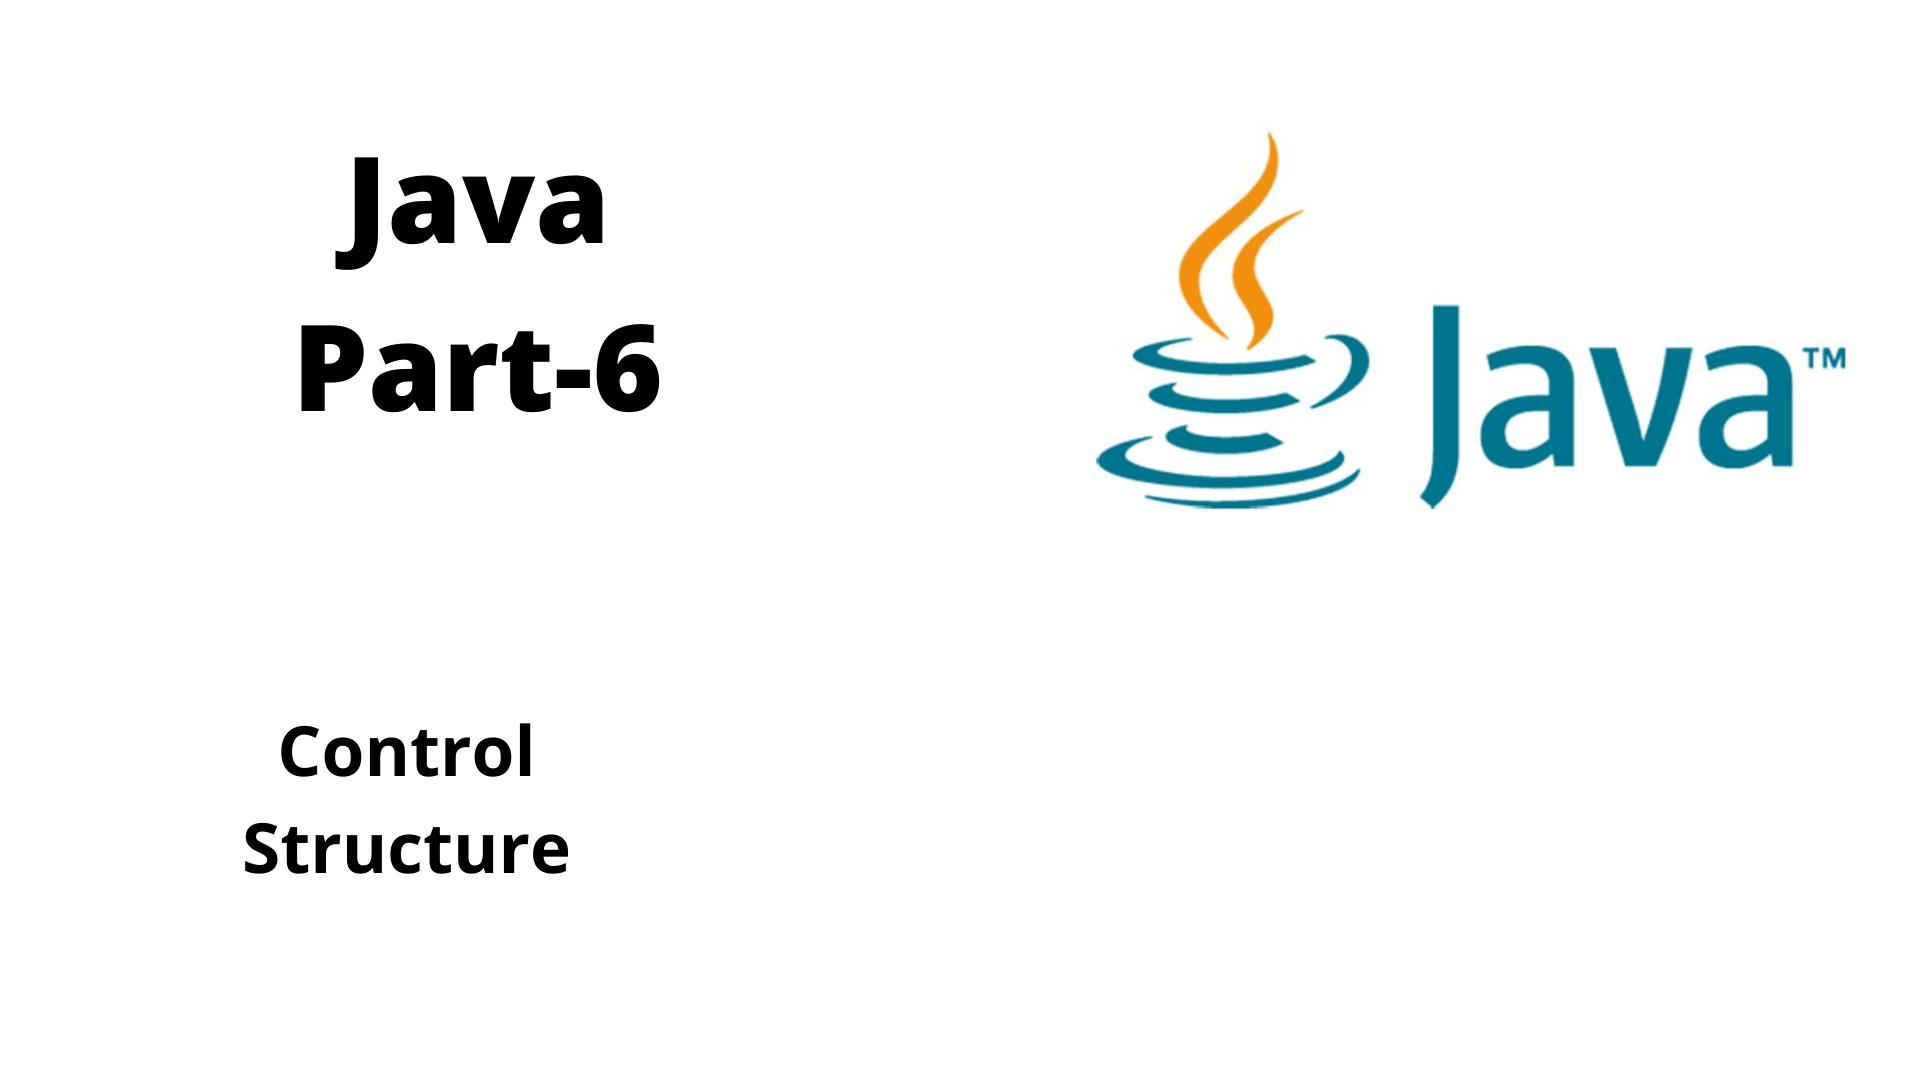 CONTROL STRUCTURE IN JAVA